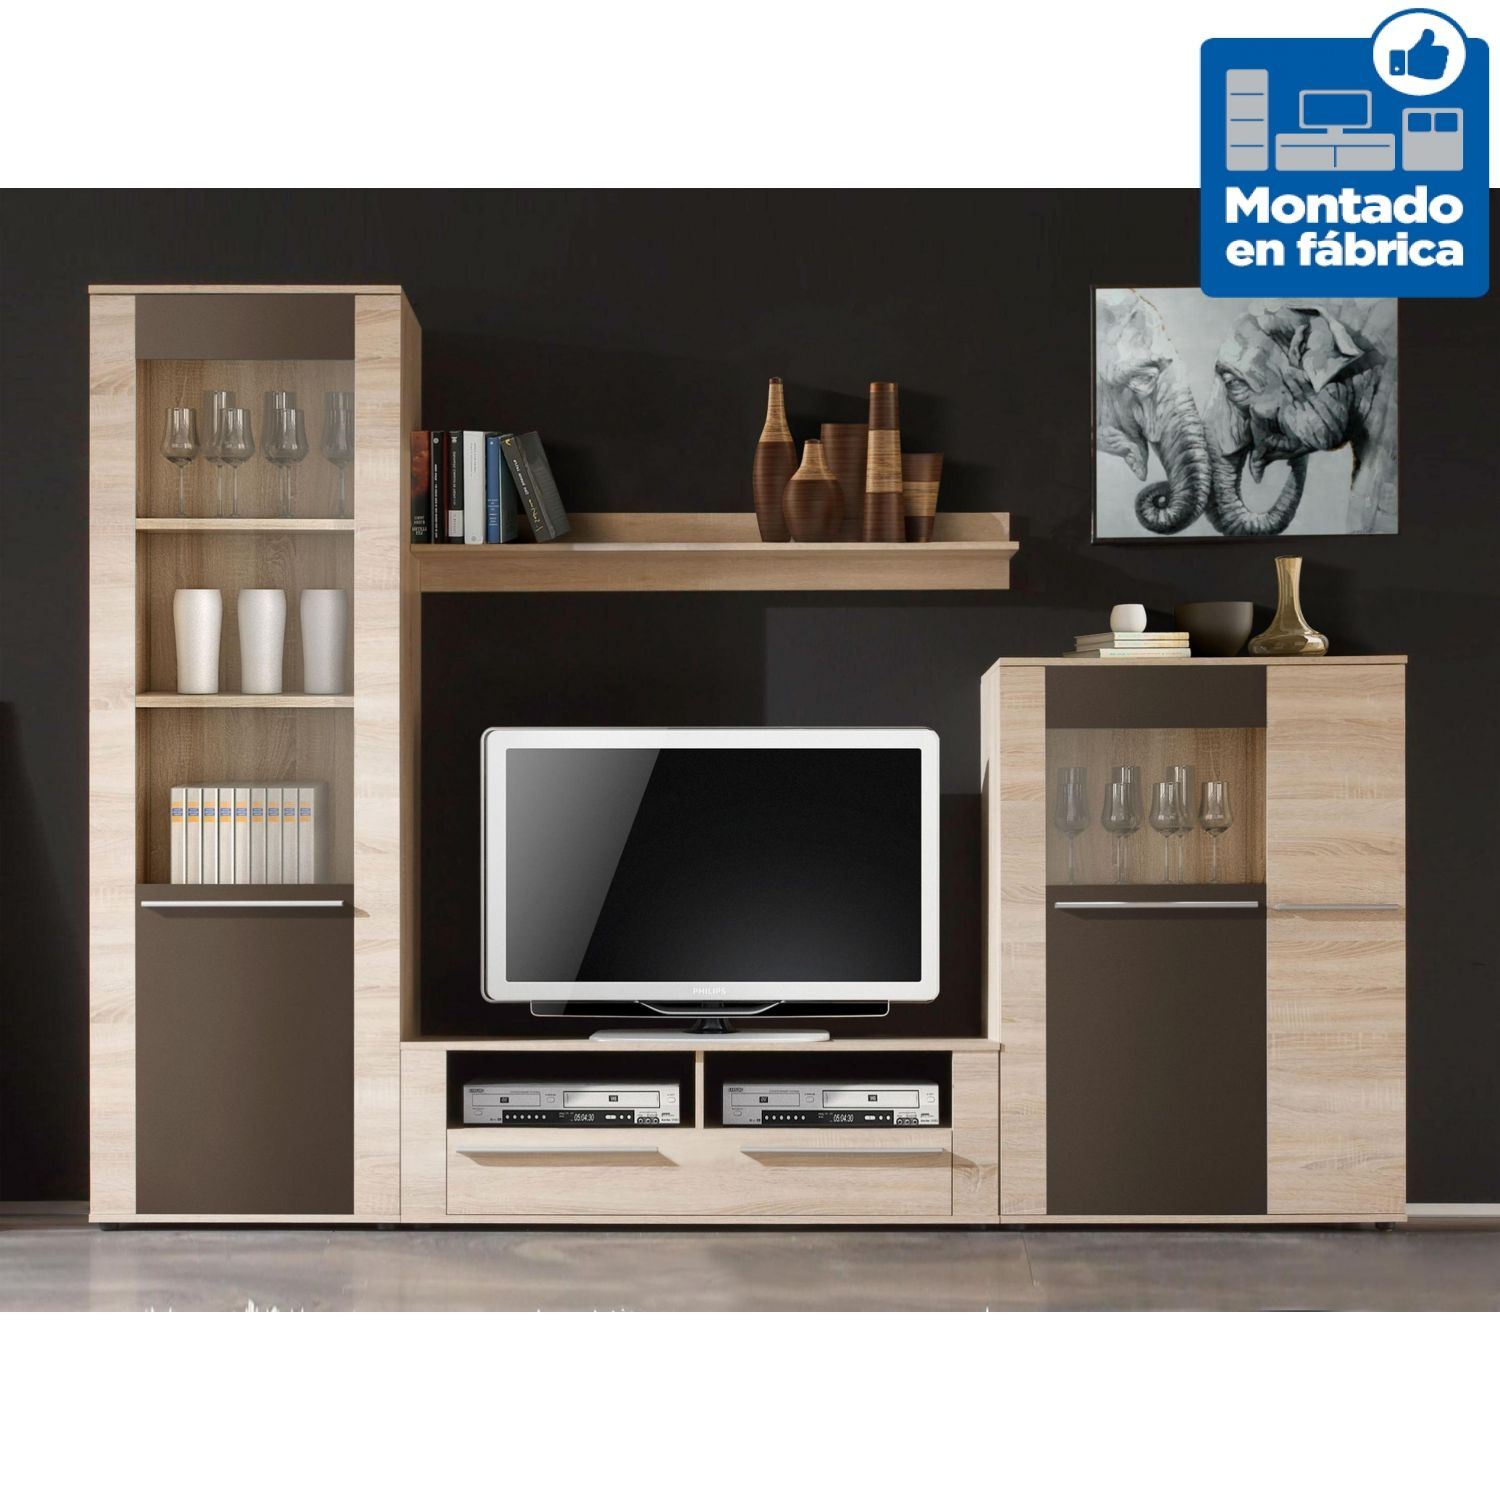 Apilable de sal n econ mico dise o moderno 180 cm mueble for Mueble economico